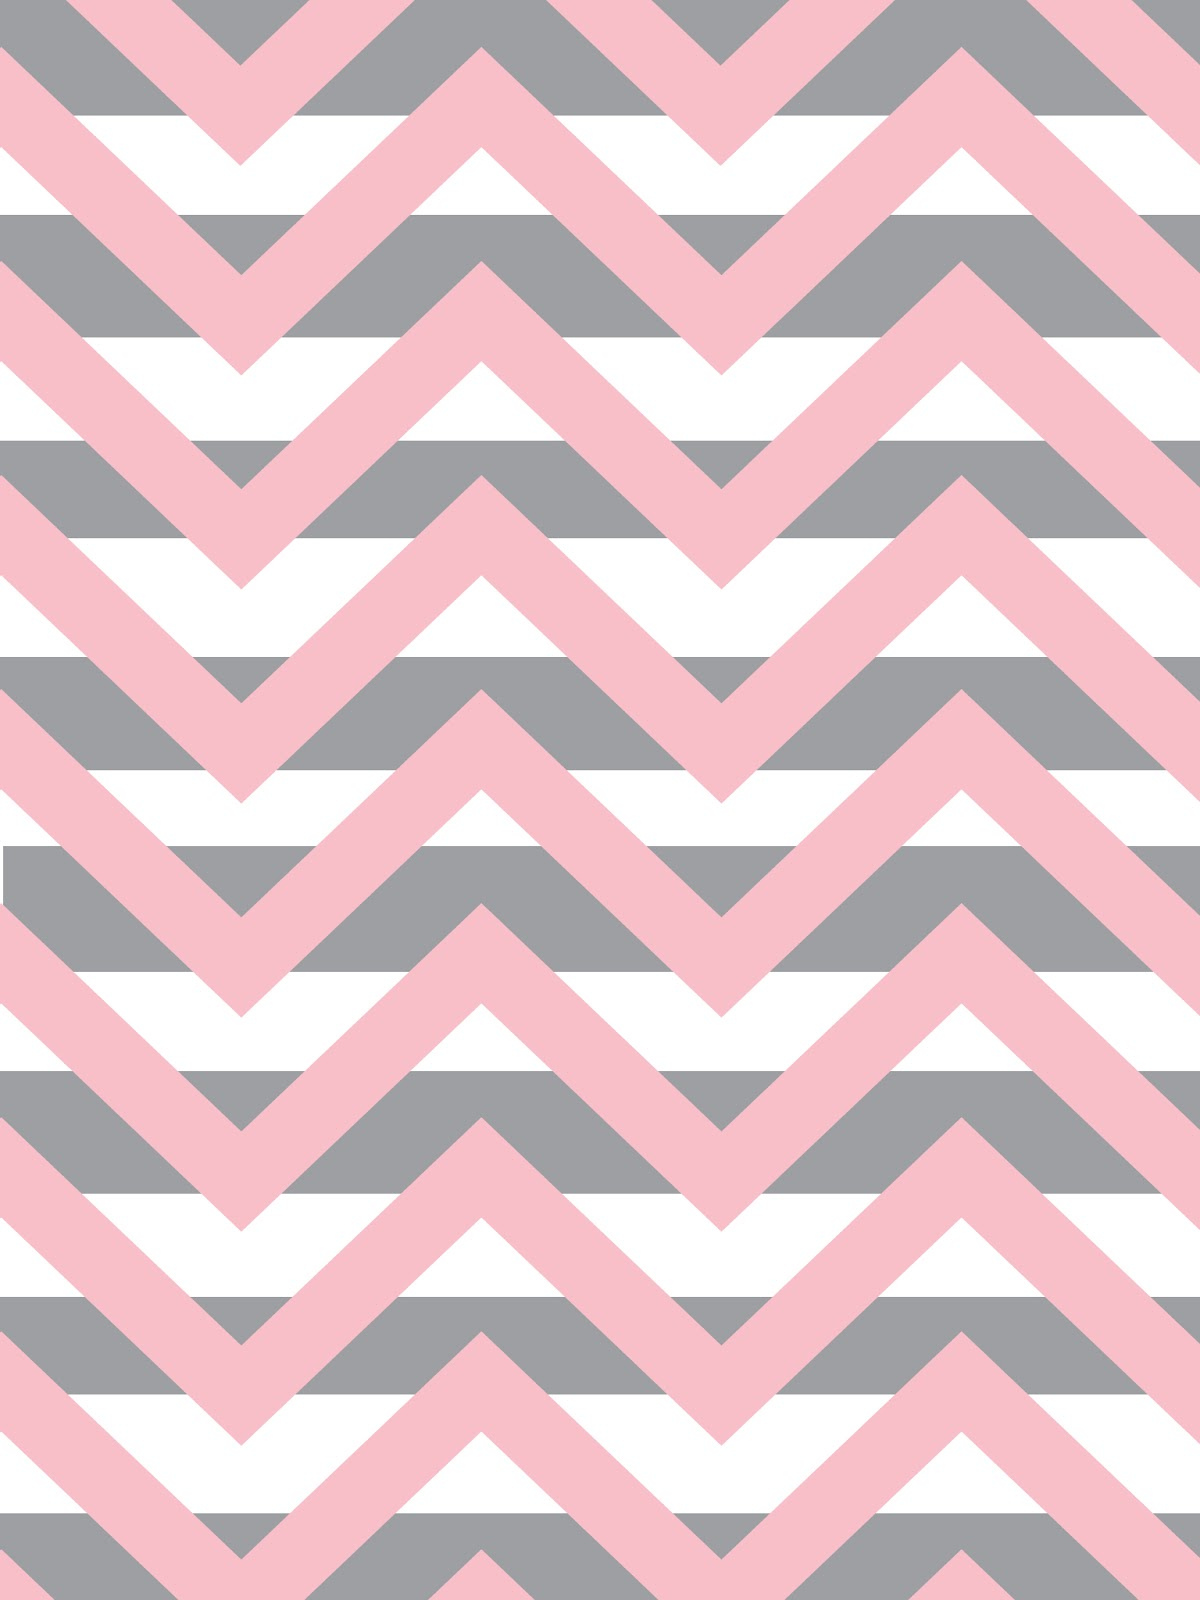 julesoca blog striped chevron